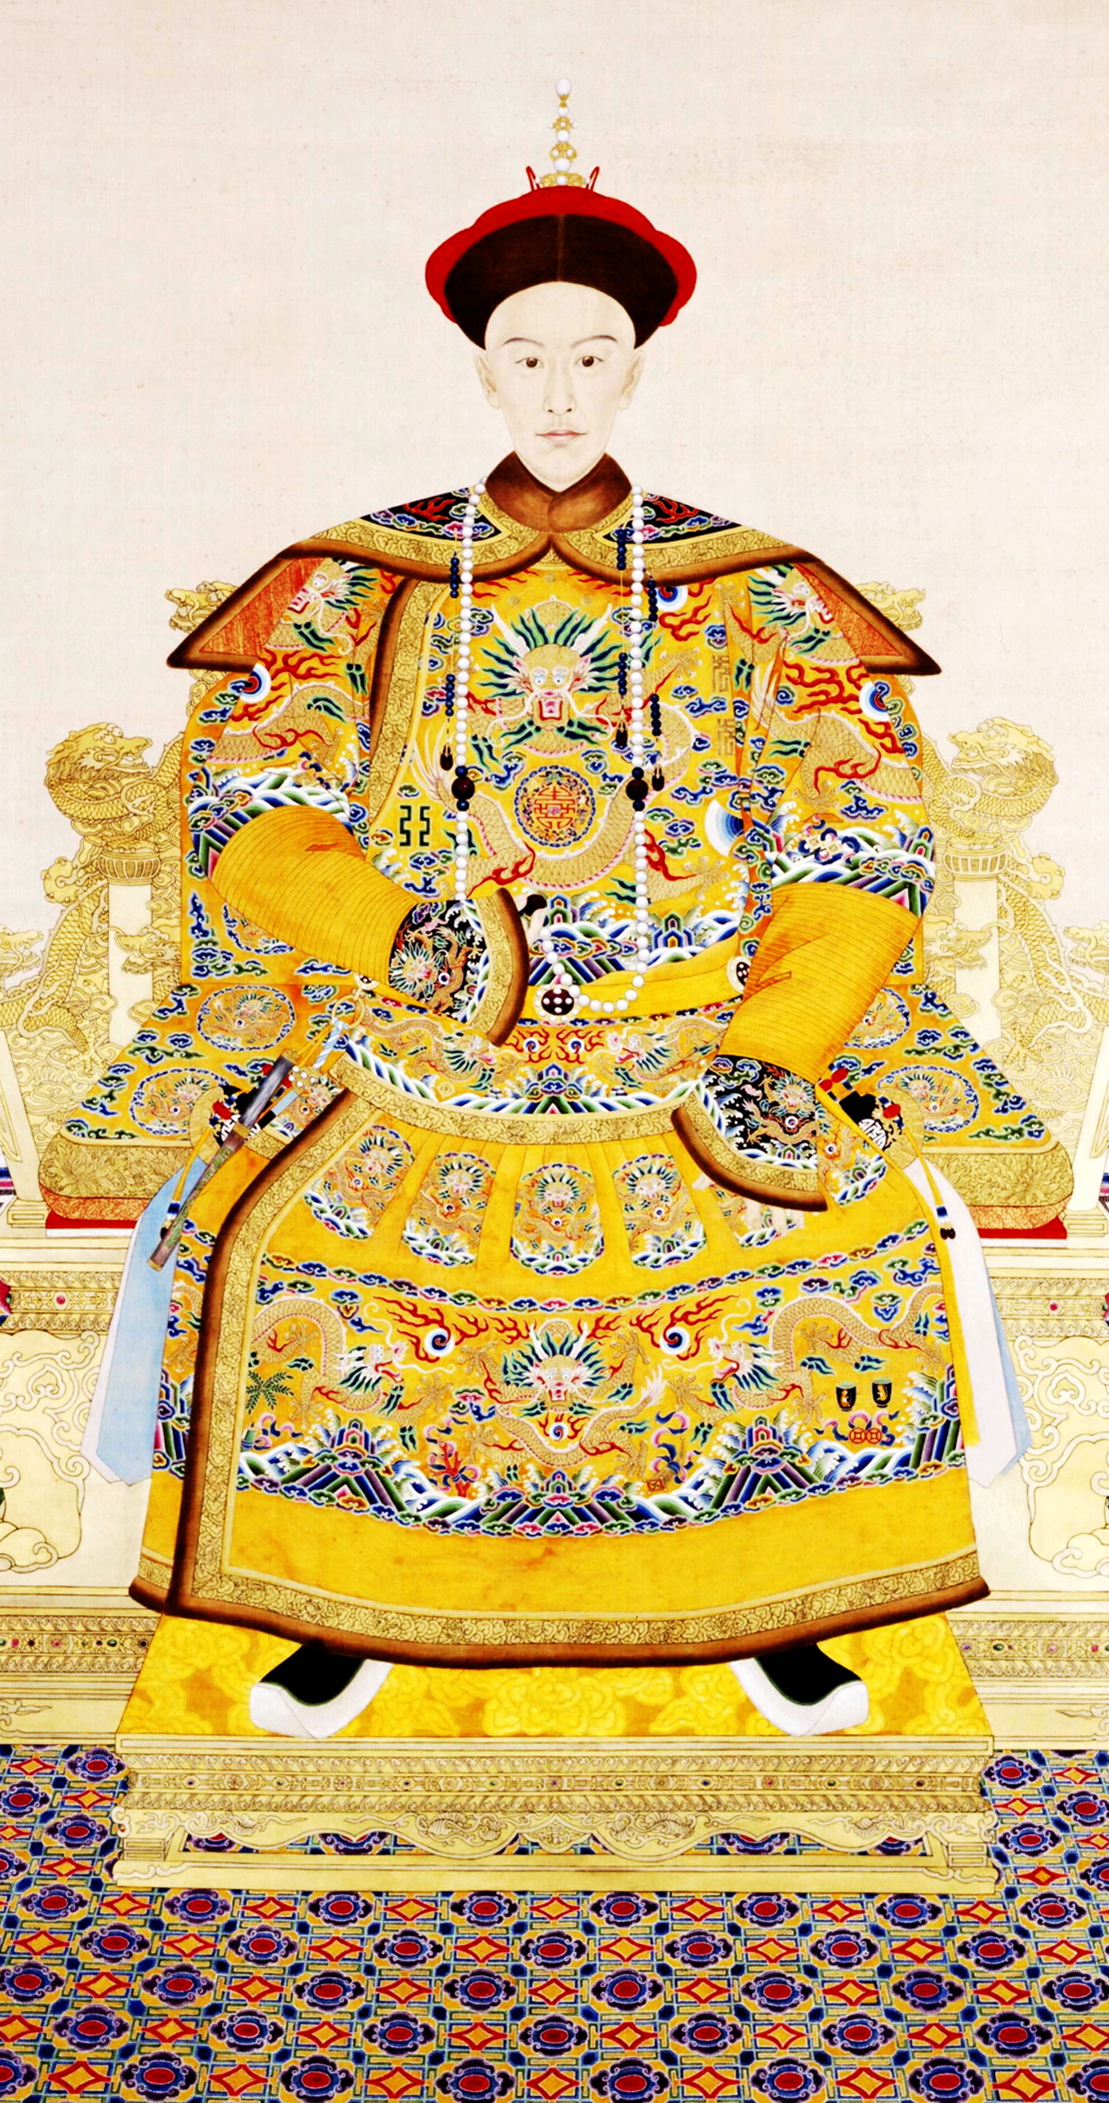 List Of Emperors Of The Qing Dynasty